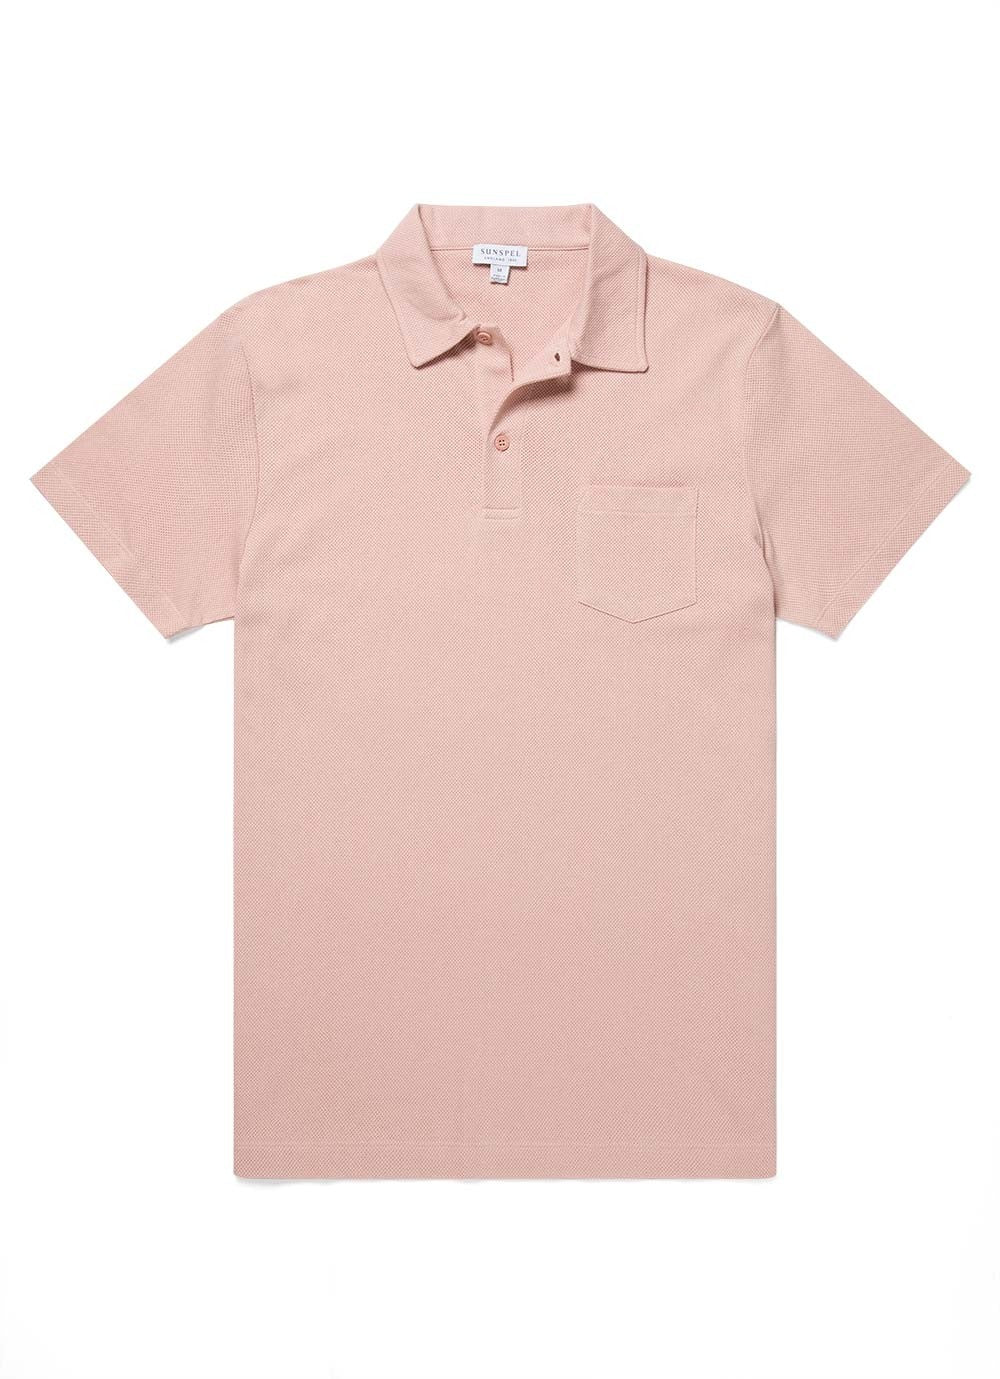 Cotton Riviera Polo Shirt